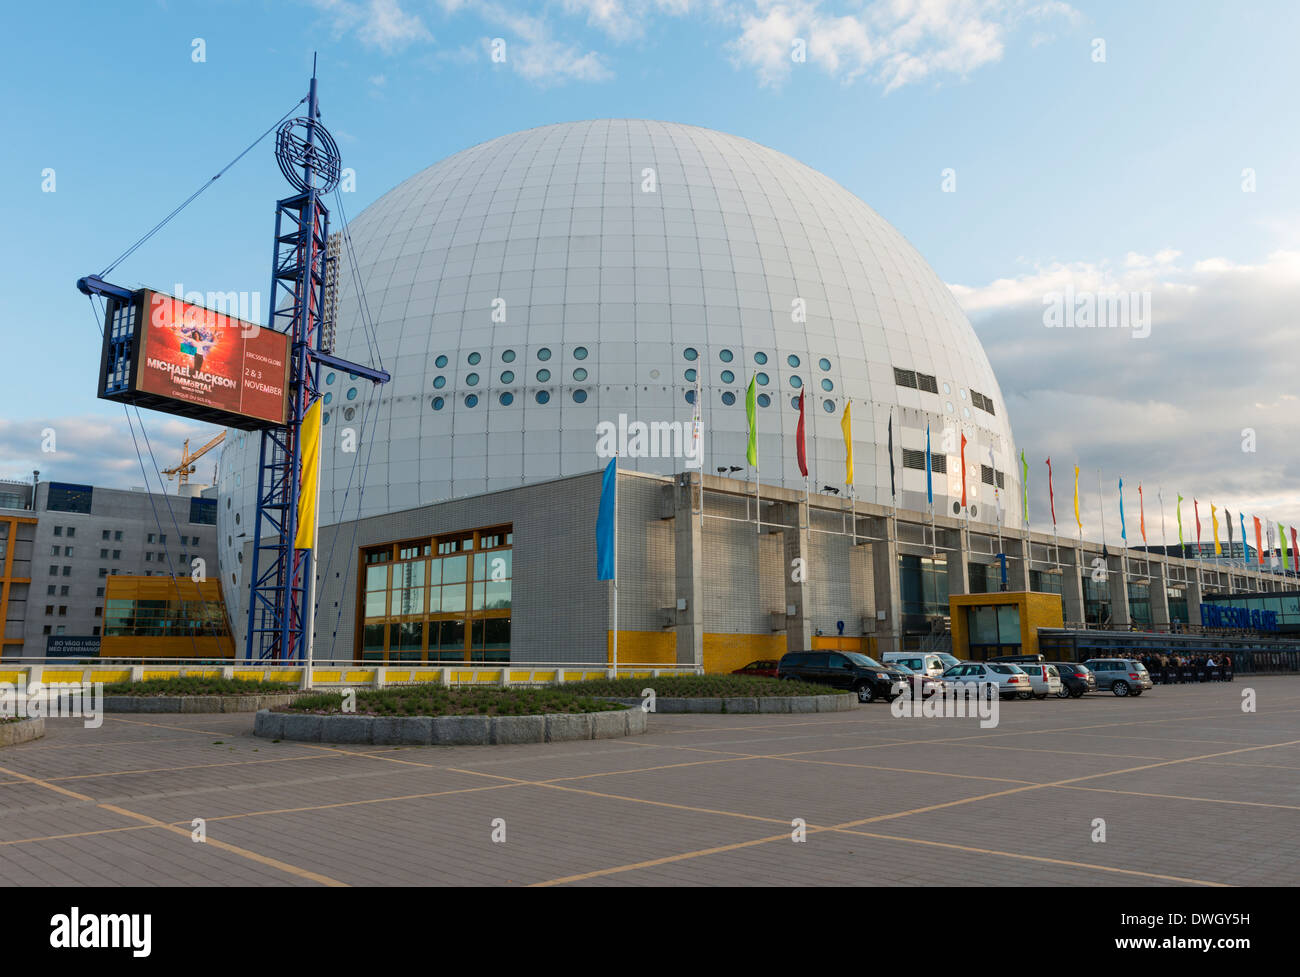 The Ericsson Globe Arena ('Globen'), in Stockholm, Sweden.  The national indoor arena of Sweden, used for ice hockey, concerts. - Stock Image